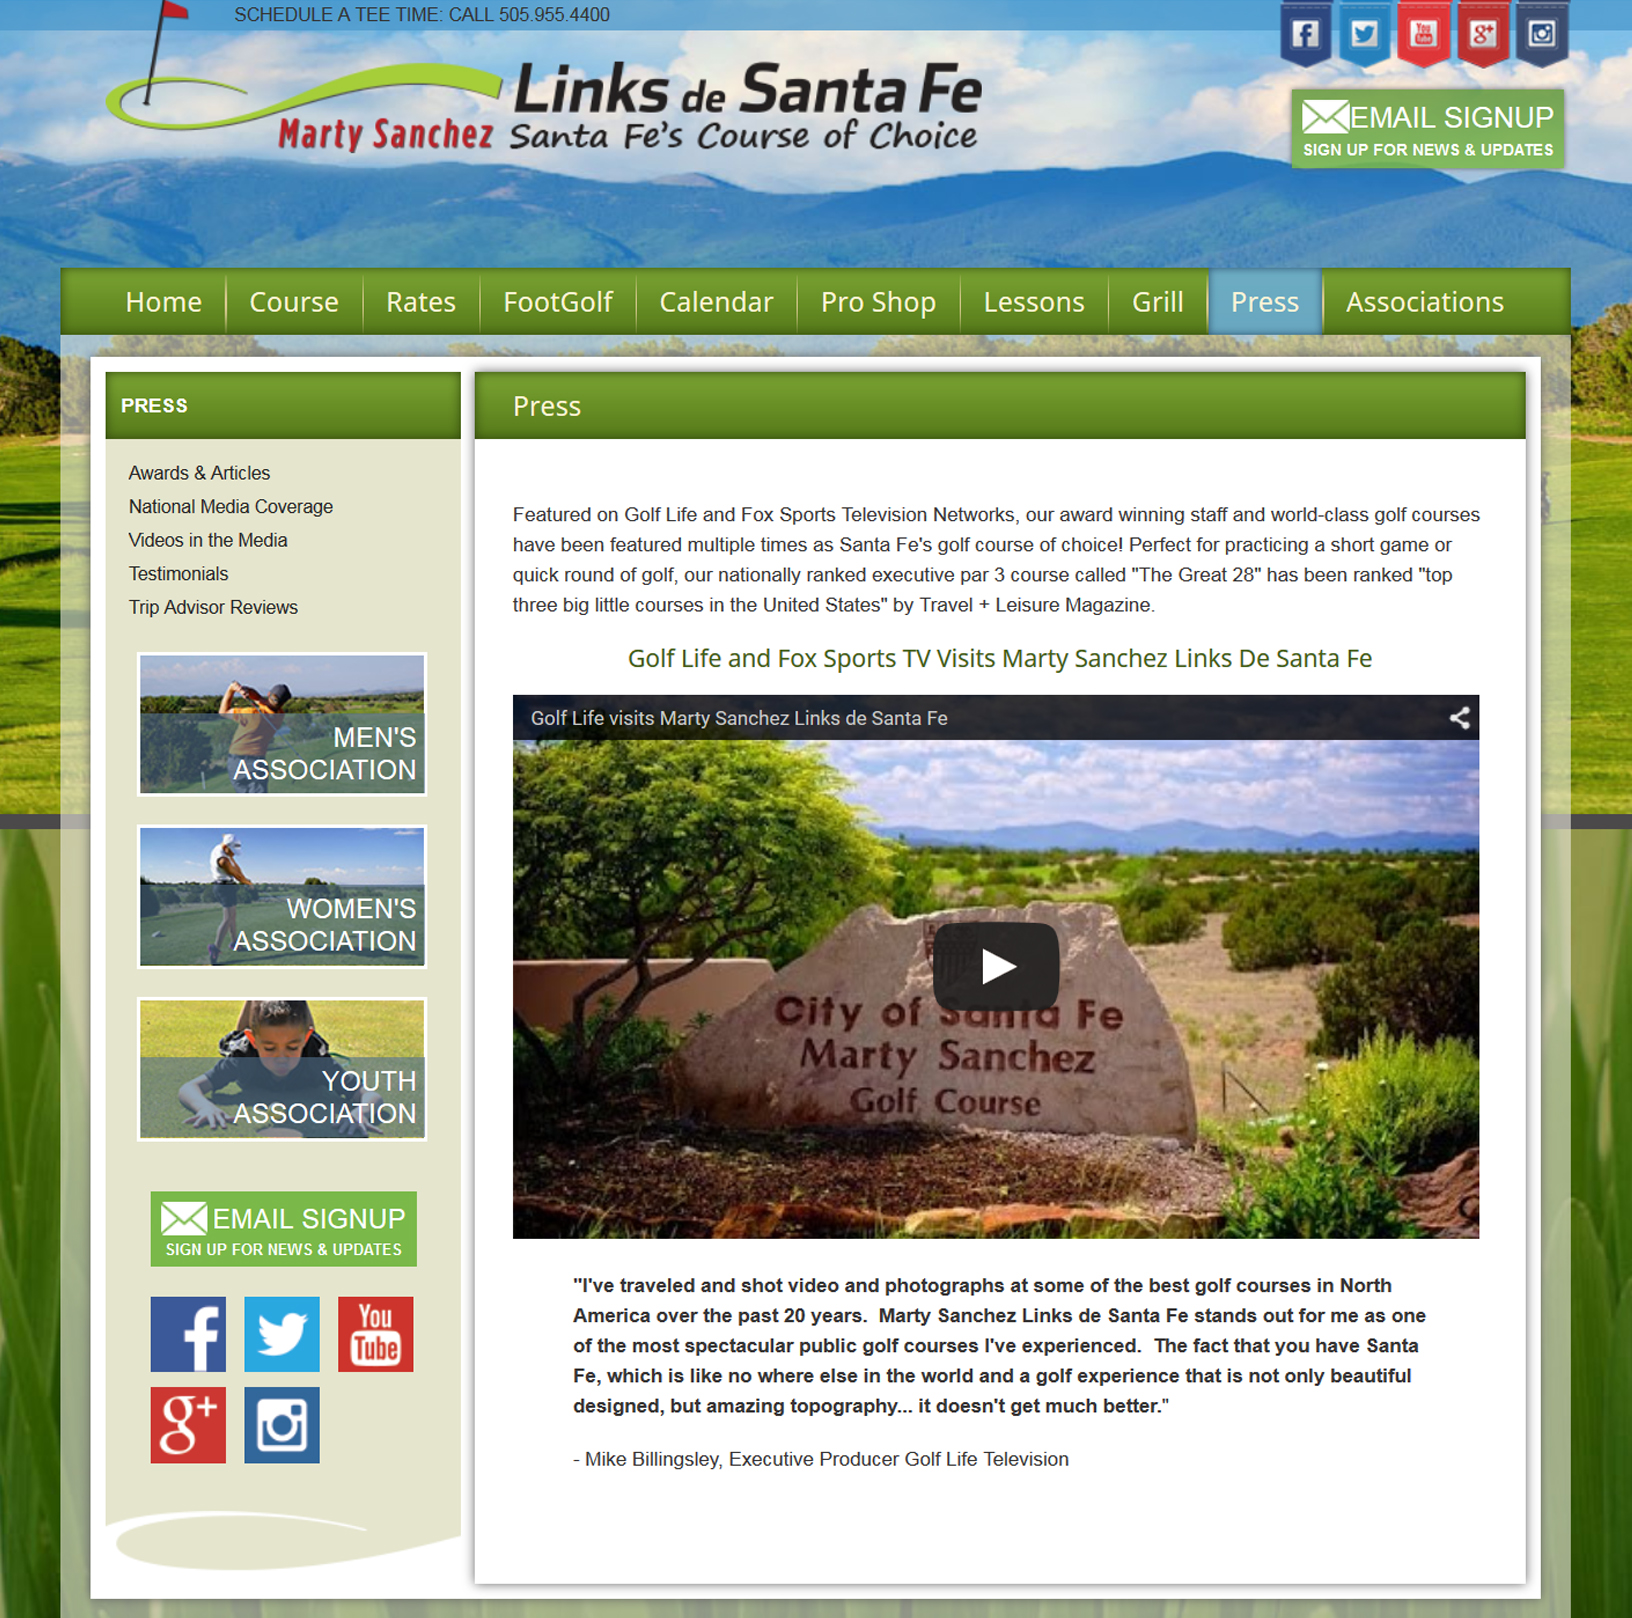 Marty Sanchez Links de Santa Fe Website - Press Section - Henry Gerard Lucero